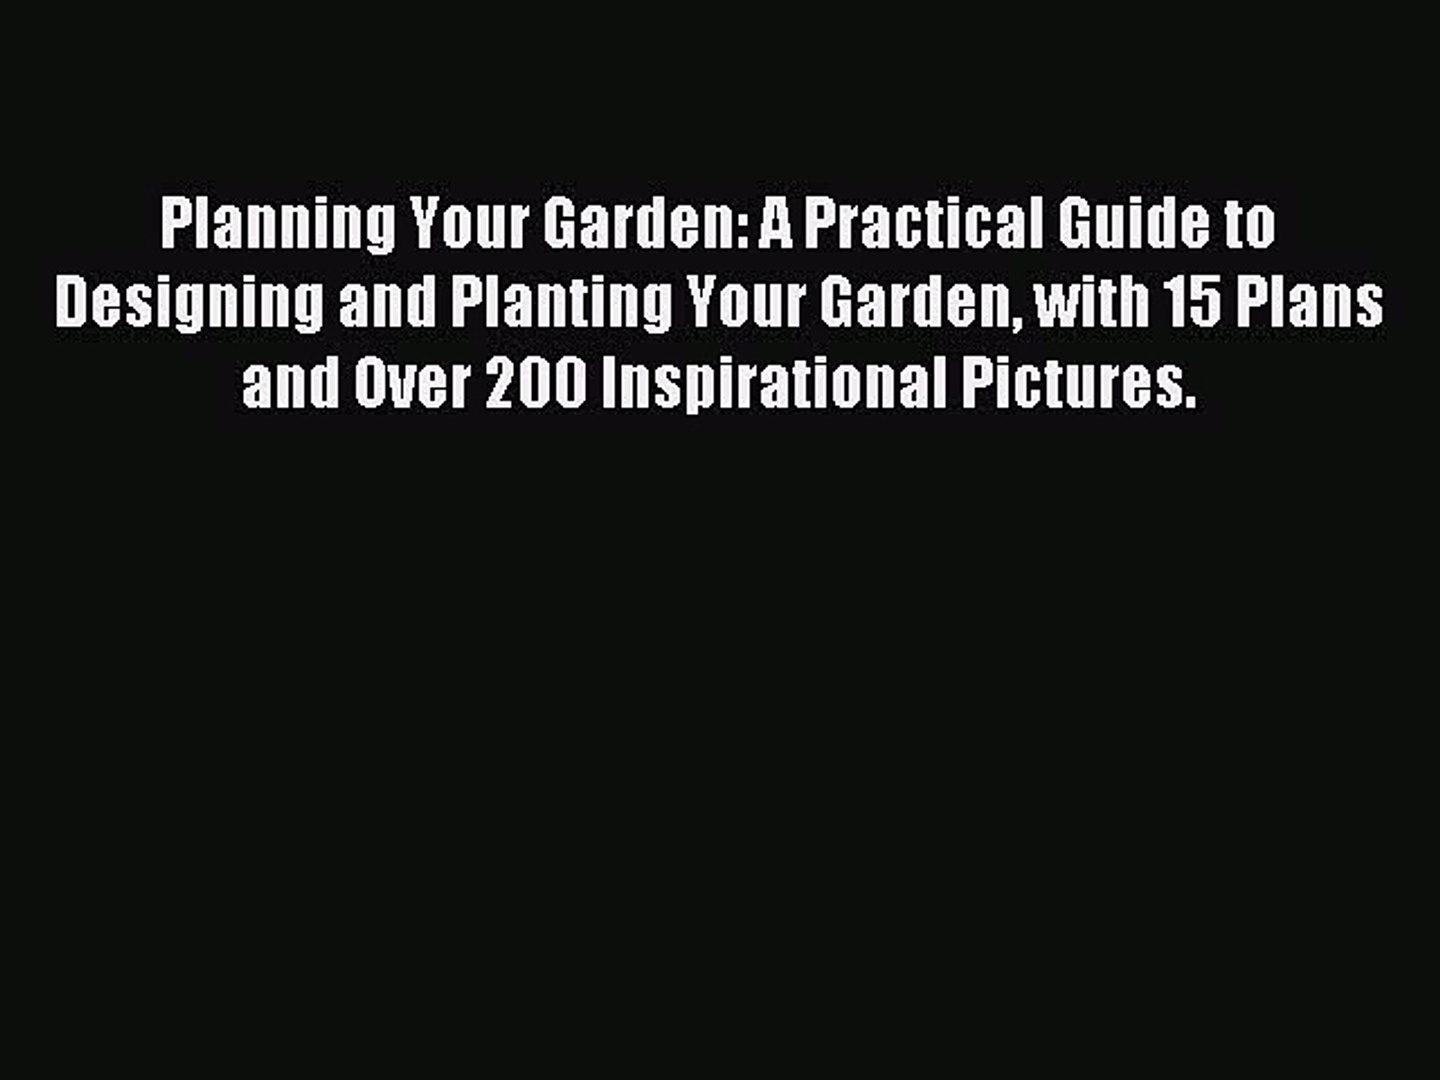 Read Planning Your Garden: A Practical Guide to Designing and Planting Your Garden with 15